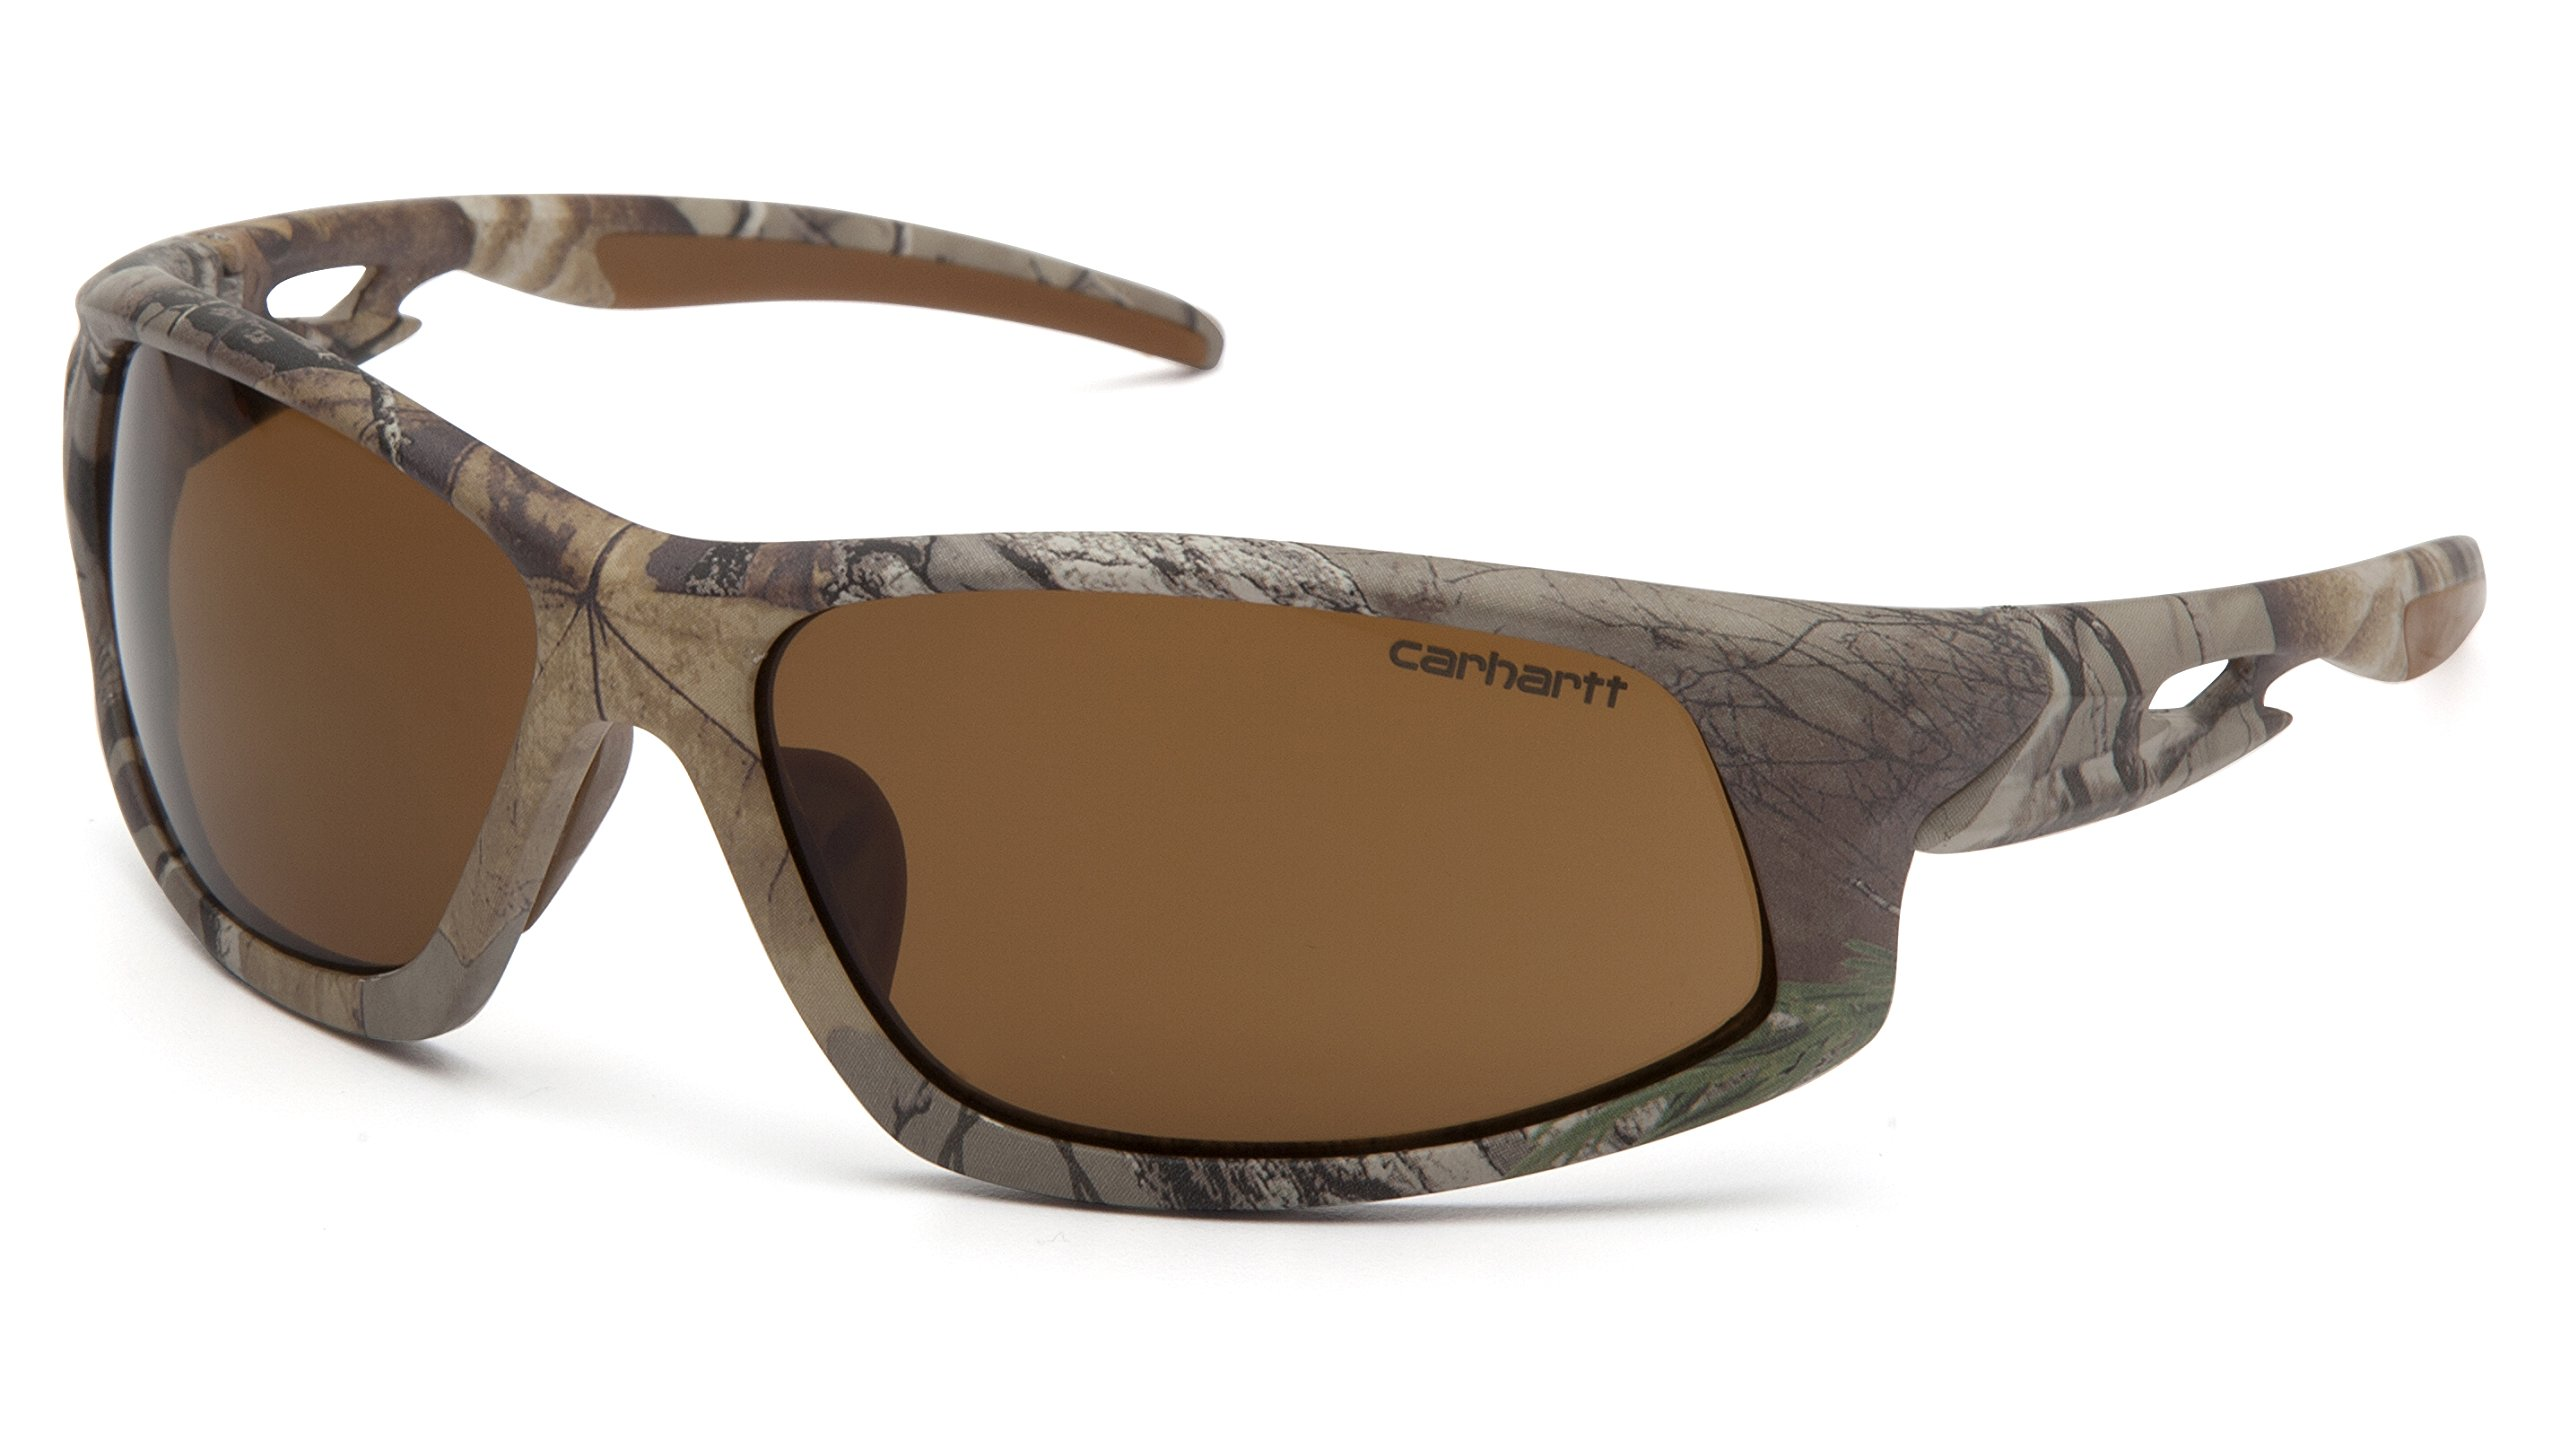 Carhartt Ironside Safety Glasses, Retail Clamshell Packaging, Realtree Xtra Frame, Sandstone Bronze Anti-Fog Lens